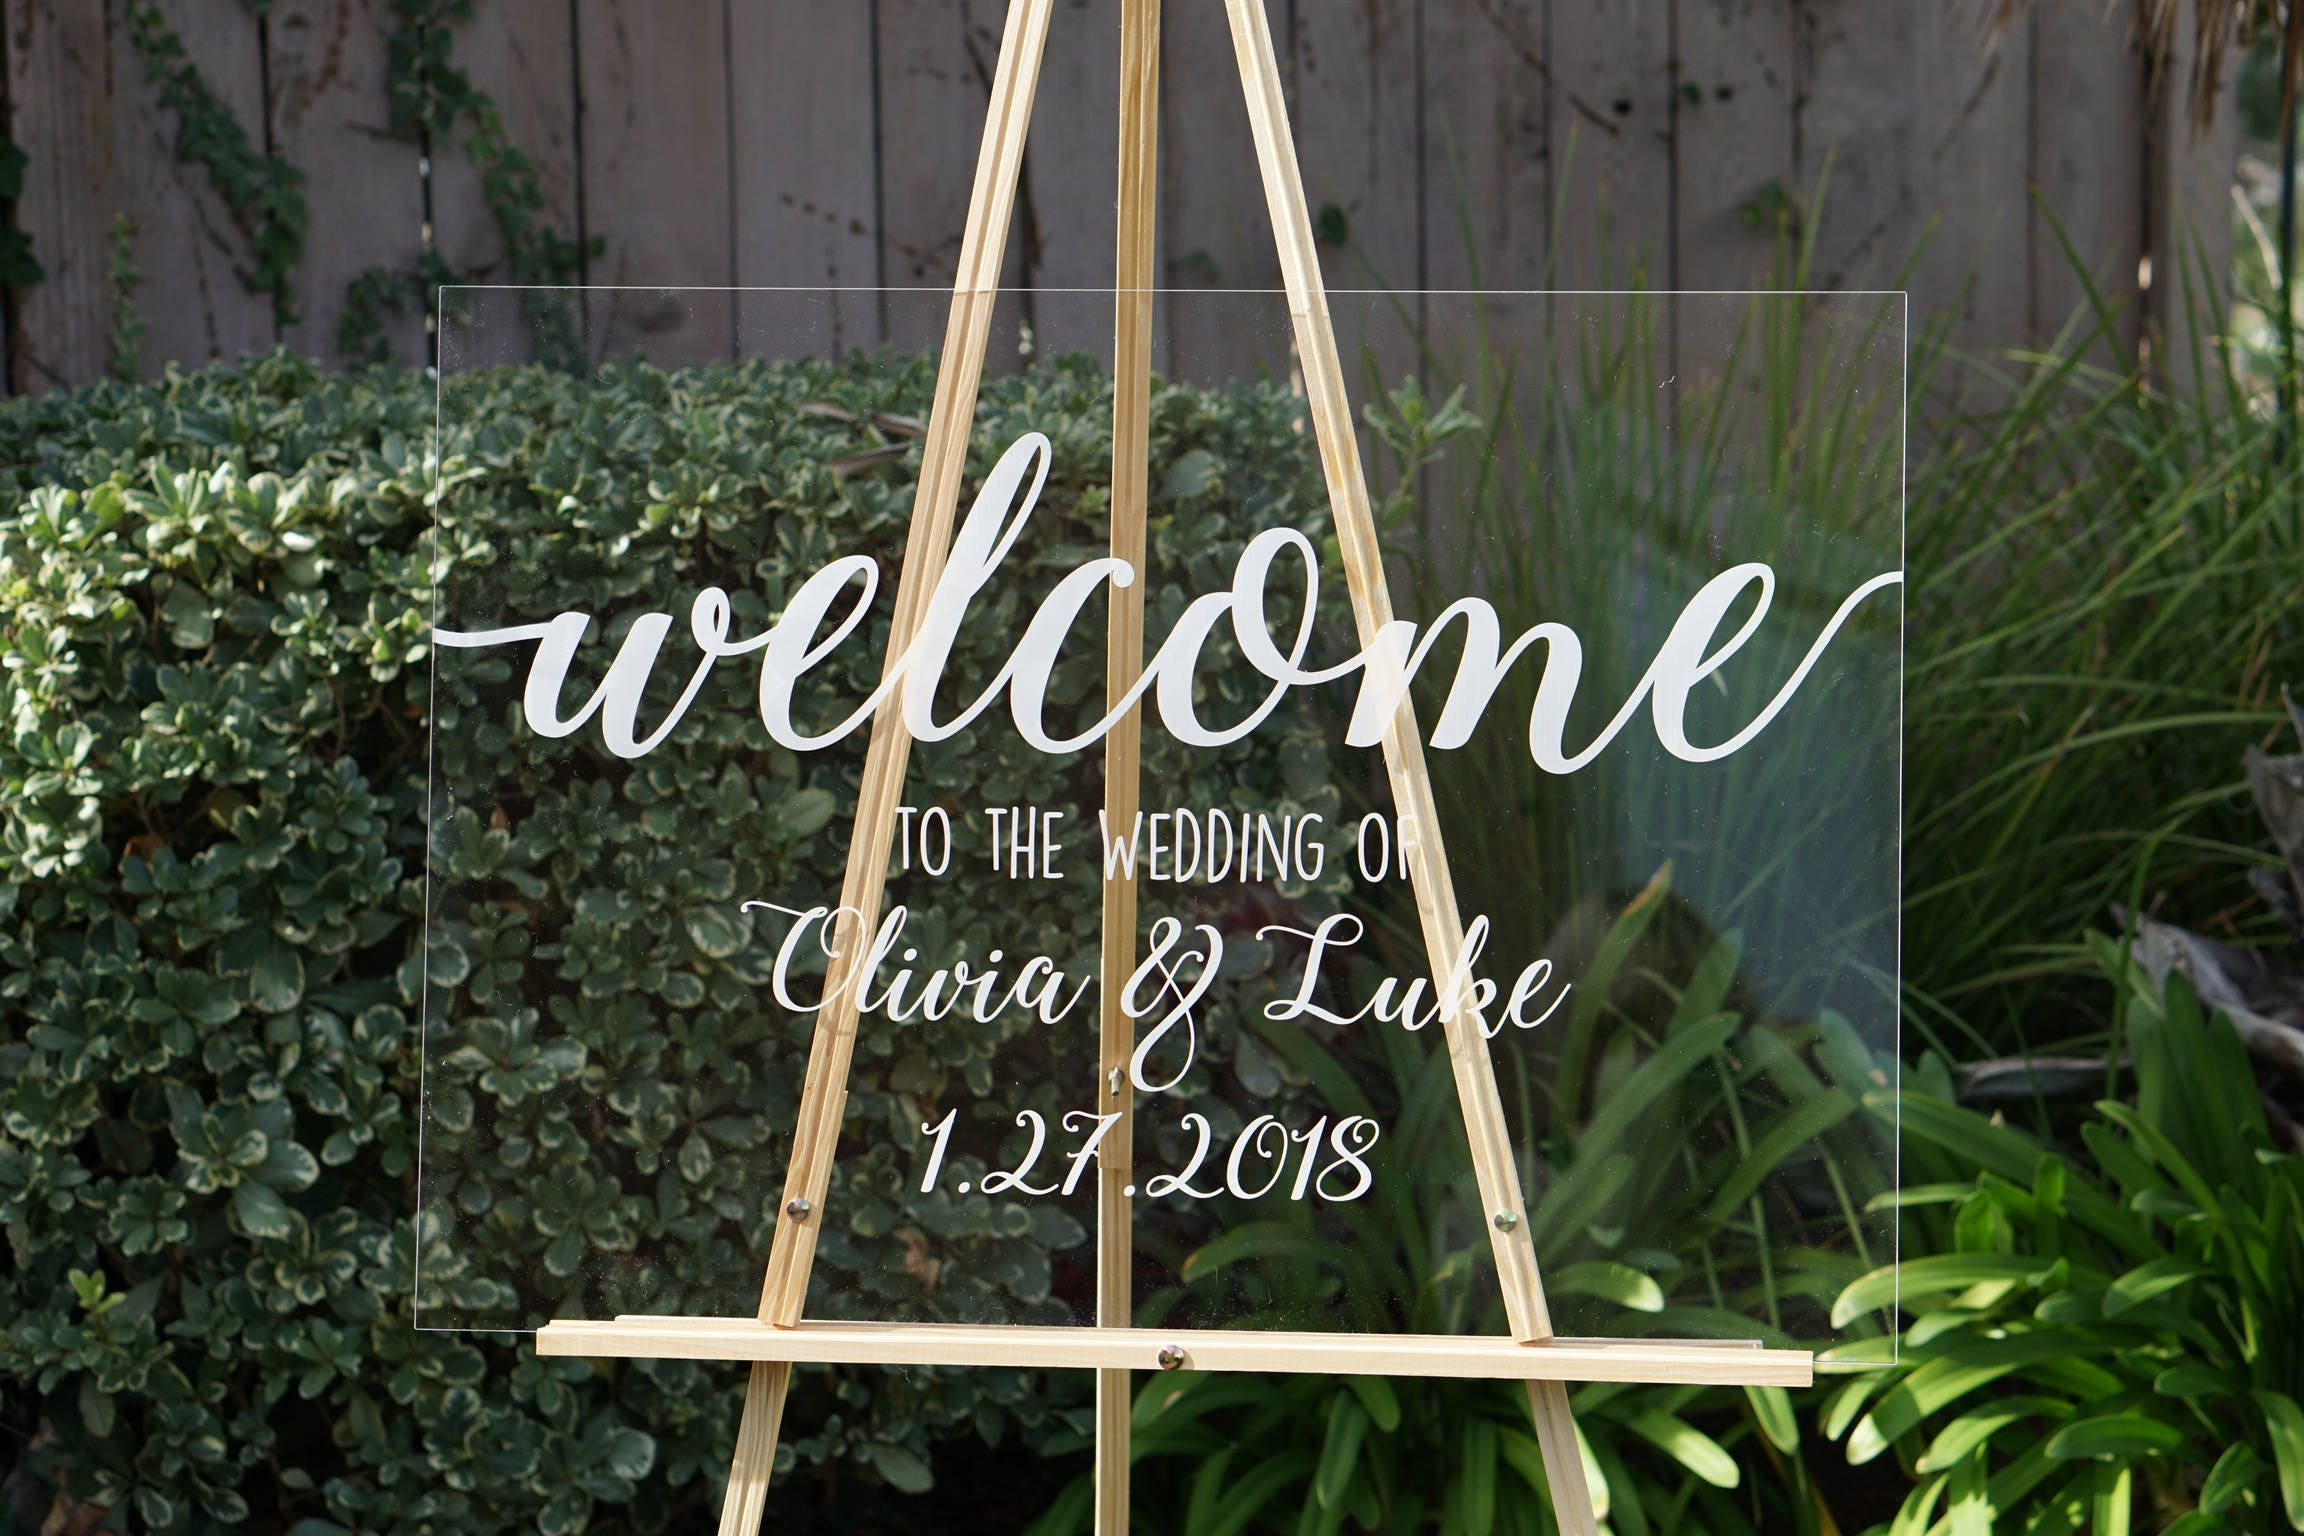 Clear wedding welcome sign wedding signs personalized sign modern clear wedding welcome sign wedding signs personalized sign modern wedding decoration sign clear acrylic welcome sign junglespirit Choice Image